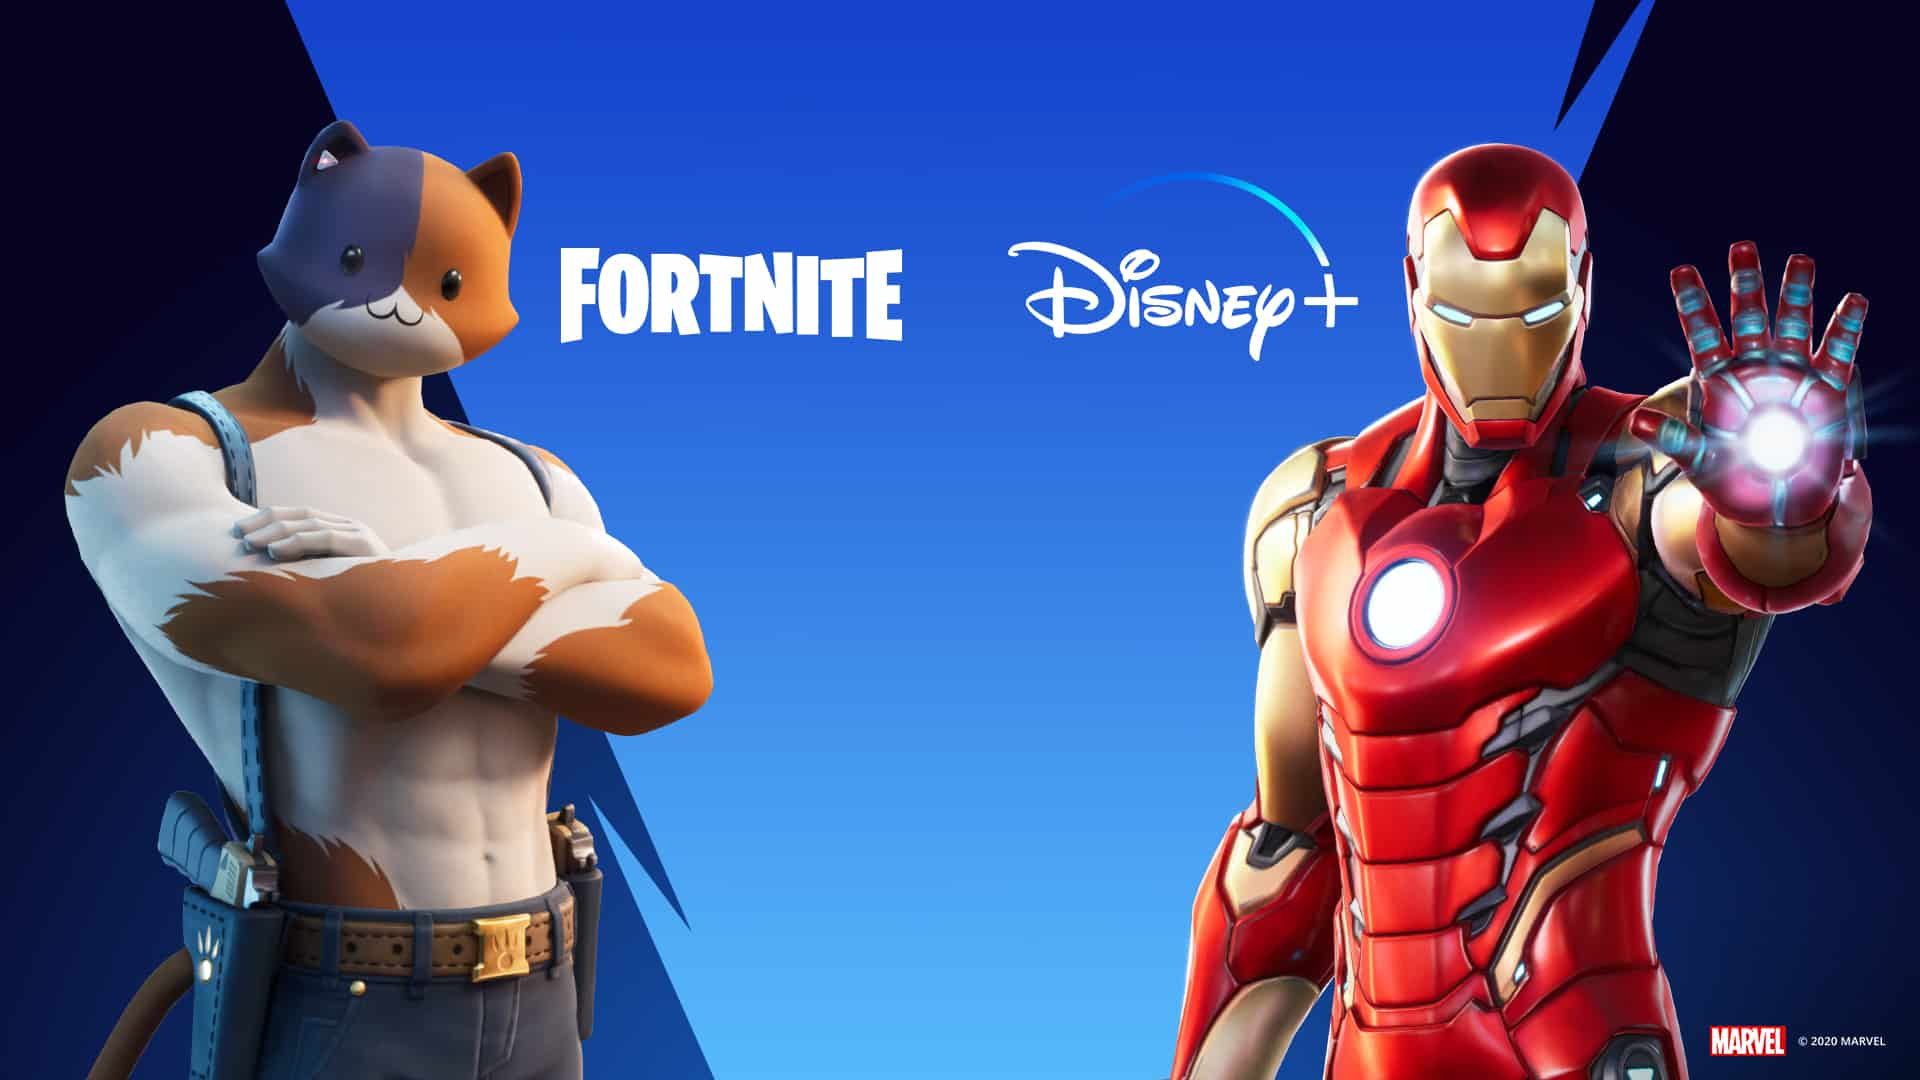 Epic Games and Disney expand collaboration with Disney+ offer